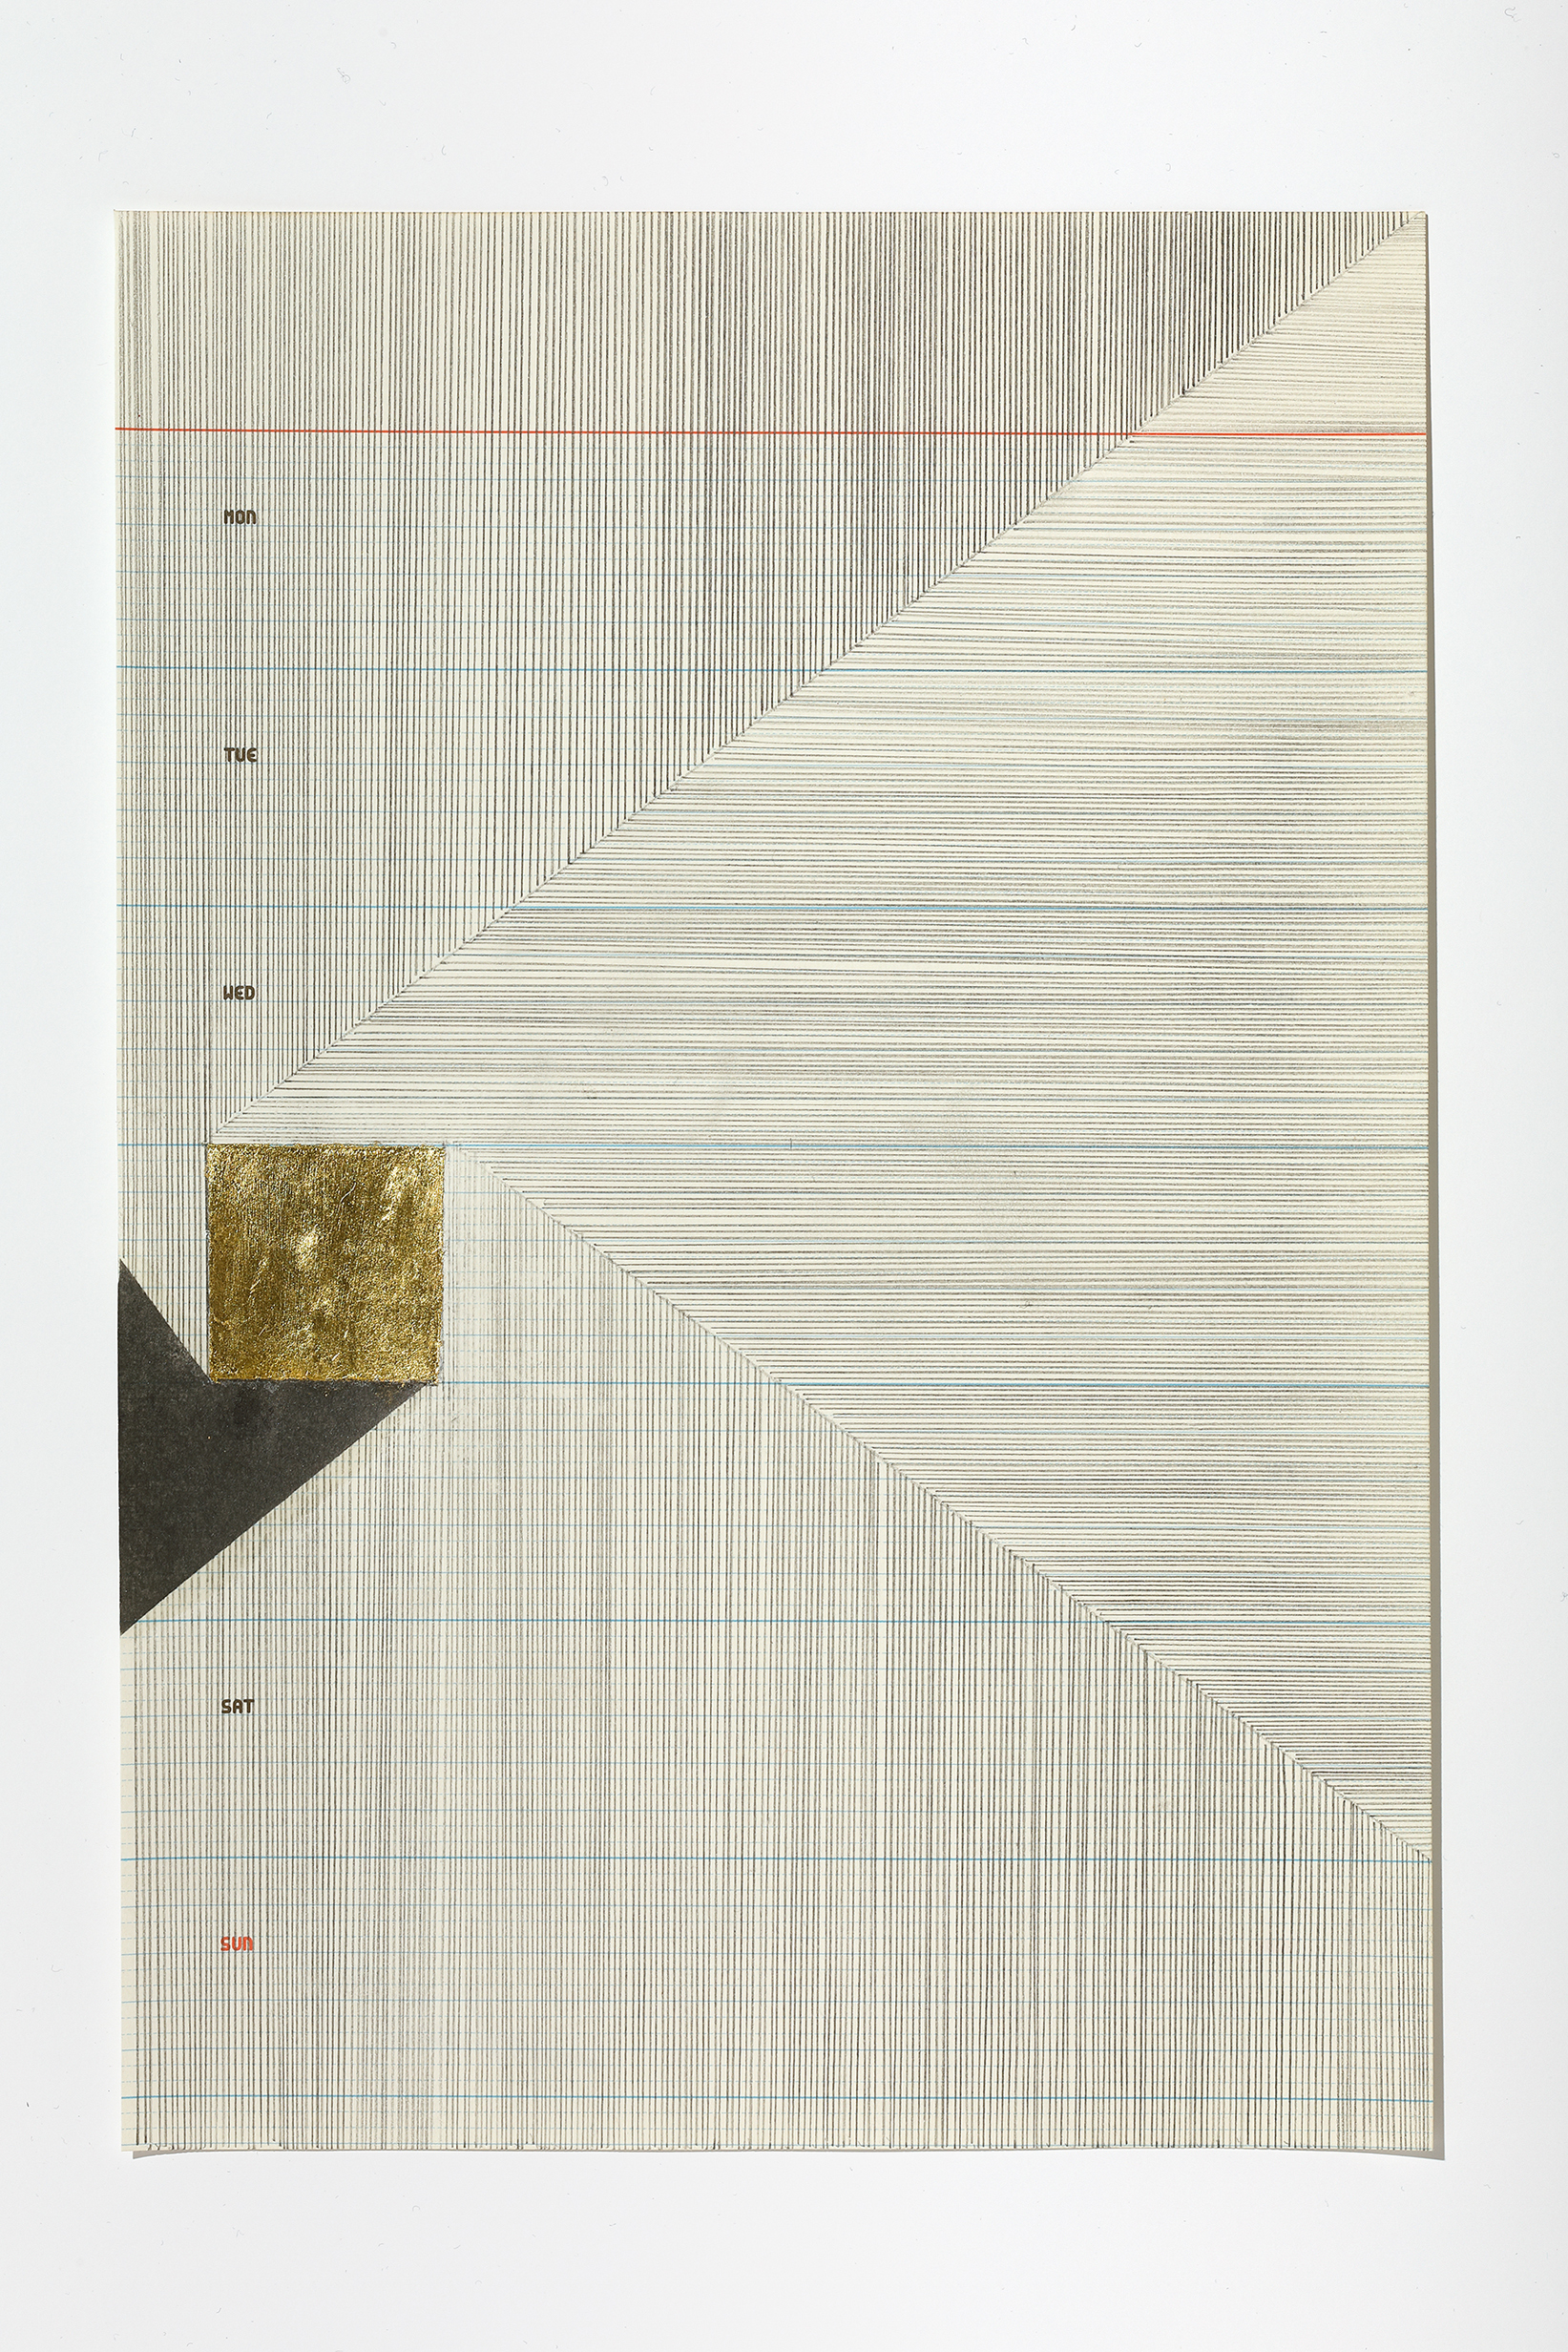 Haleh Redjaian  Six Weeks in Love (4/6) , 2017 graphite and gold leaf on paper, 28,5 x 19,5 cm